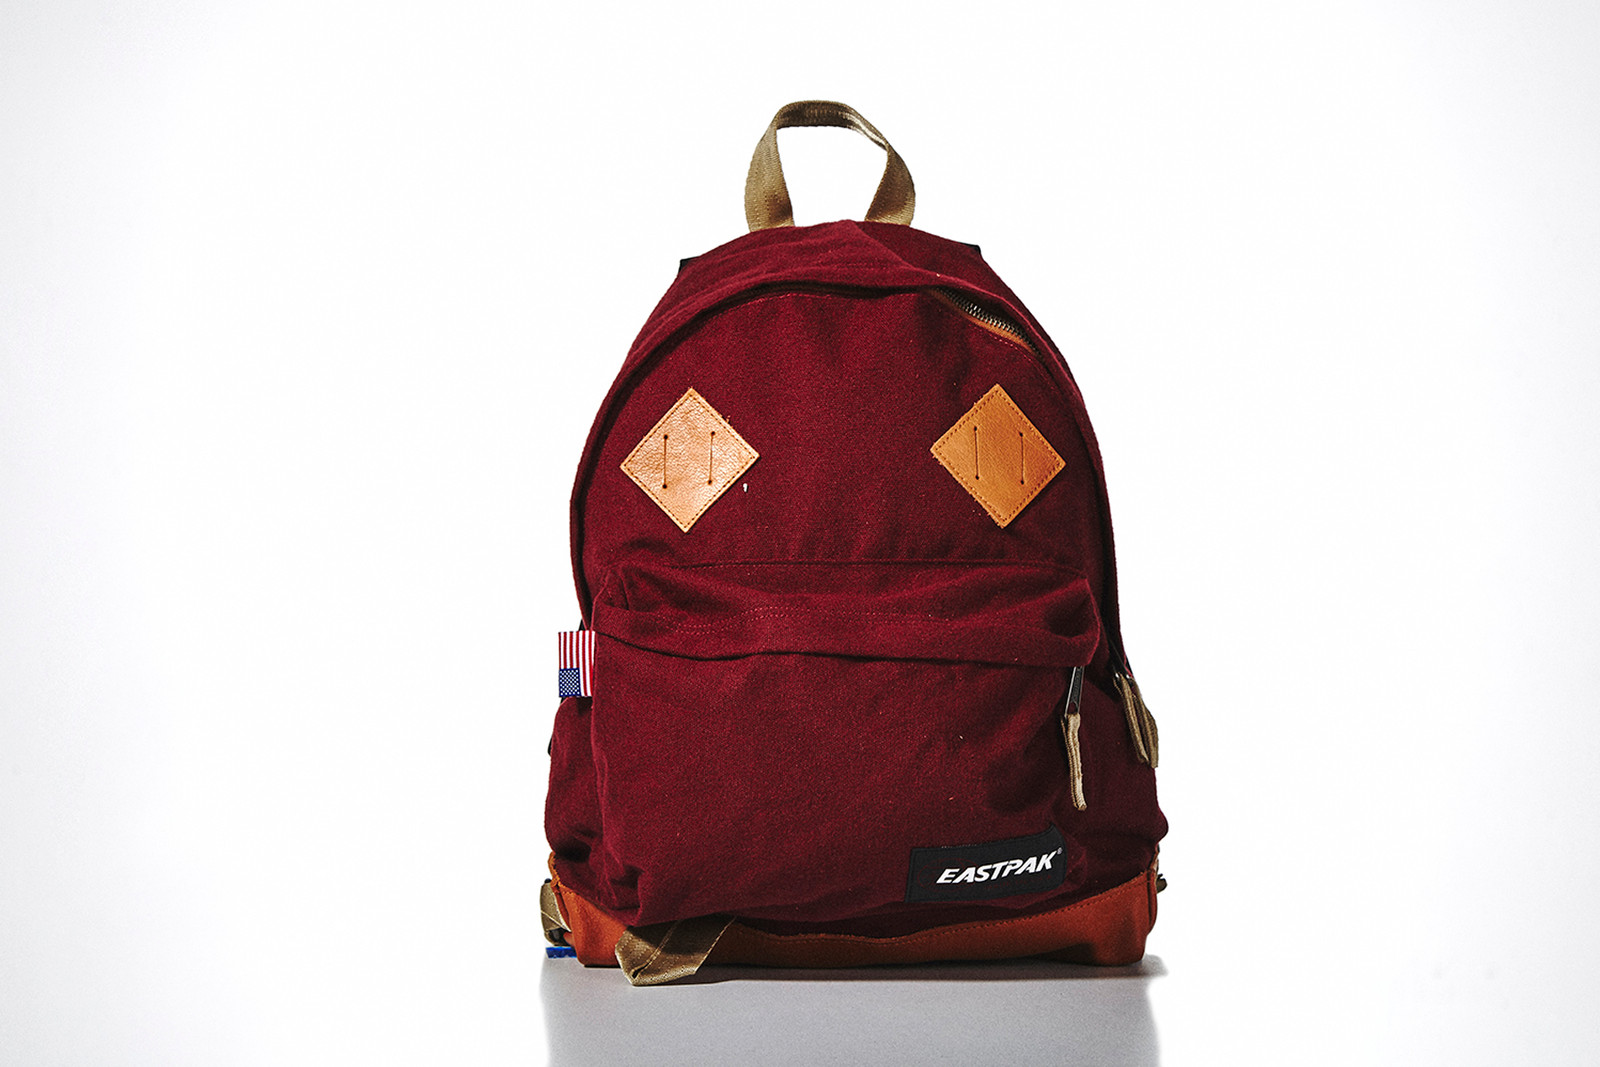 The Eastpak Padded Pak'r Backpack Turns 40 This Year